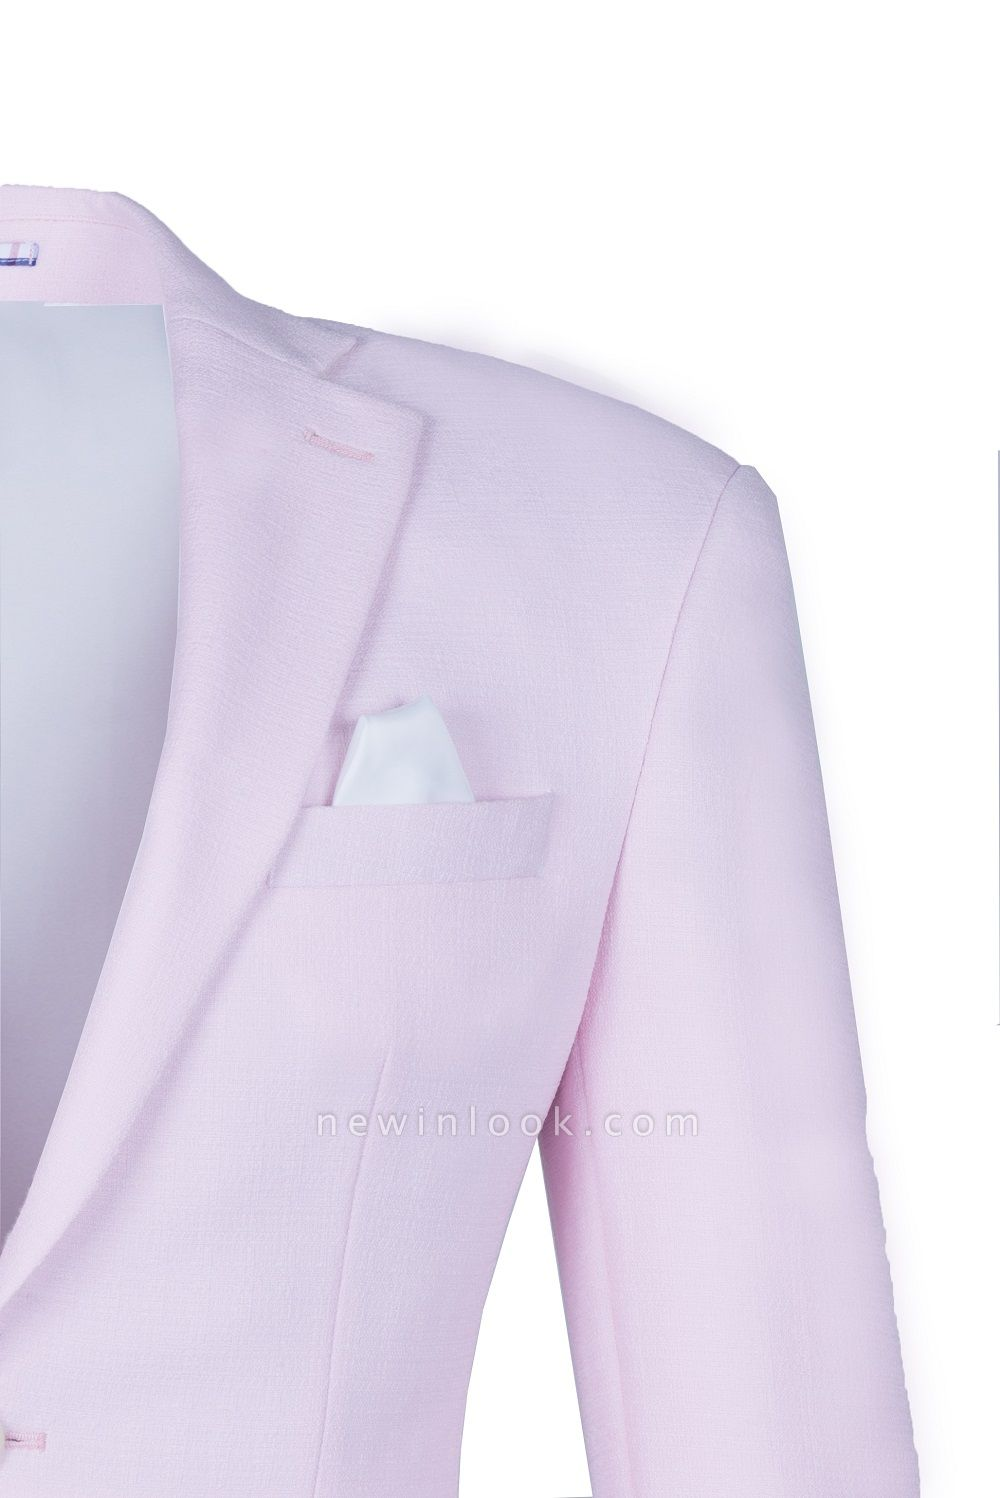 Candy Pink High Quality Single Breasted Peak Lapel Chambelanes Tuxedos